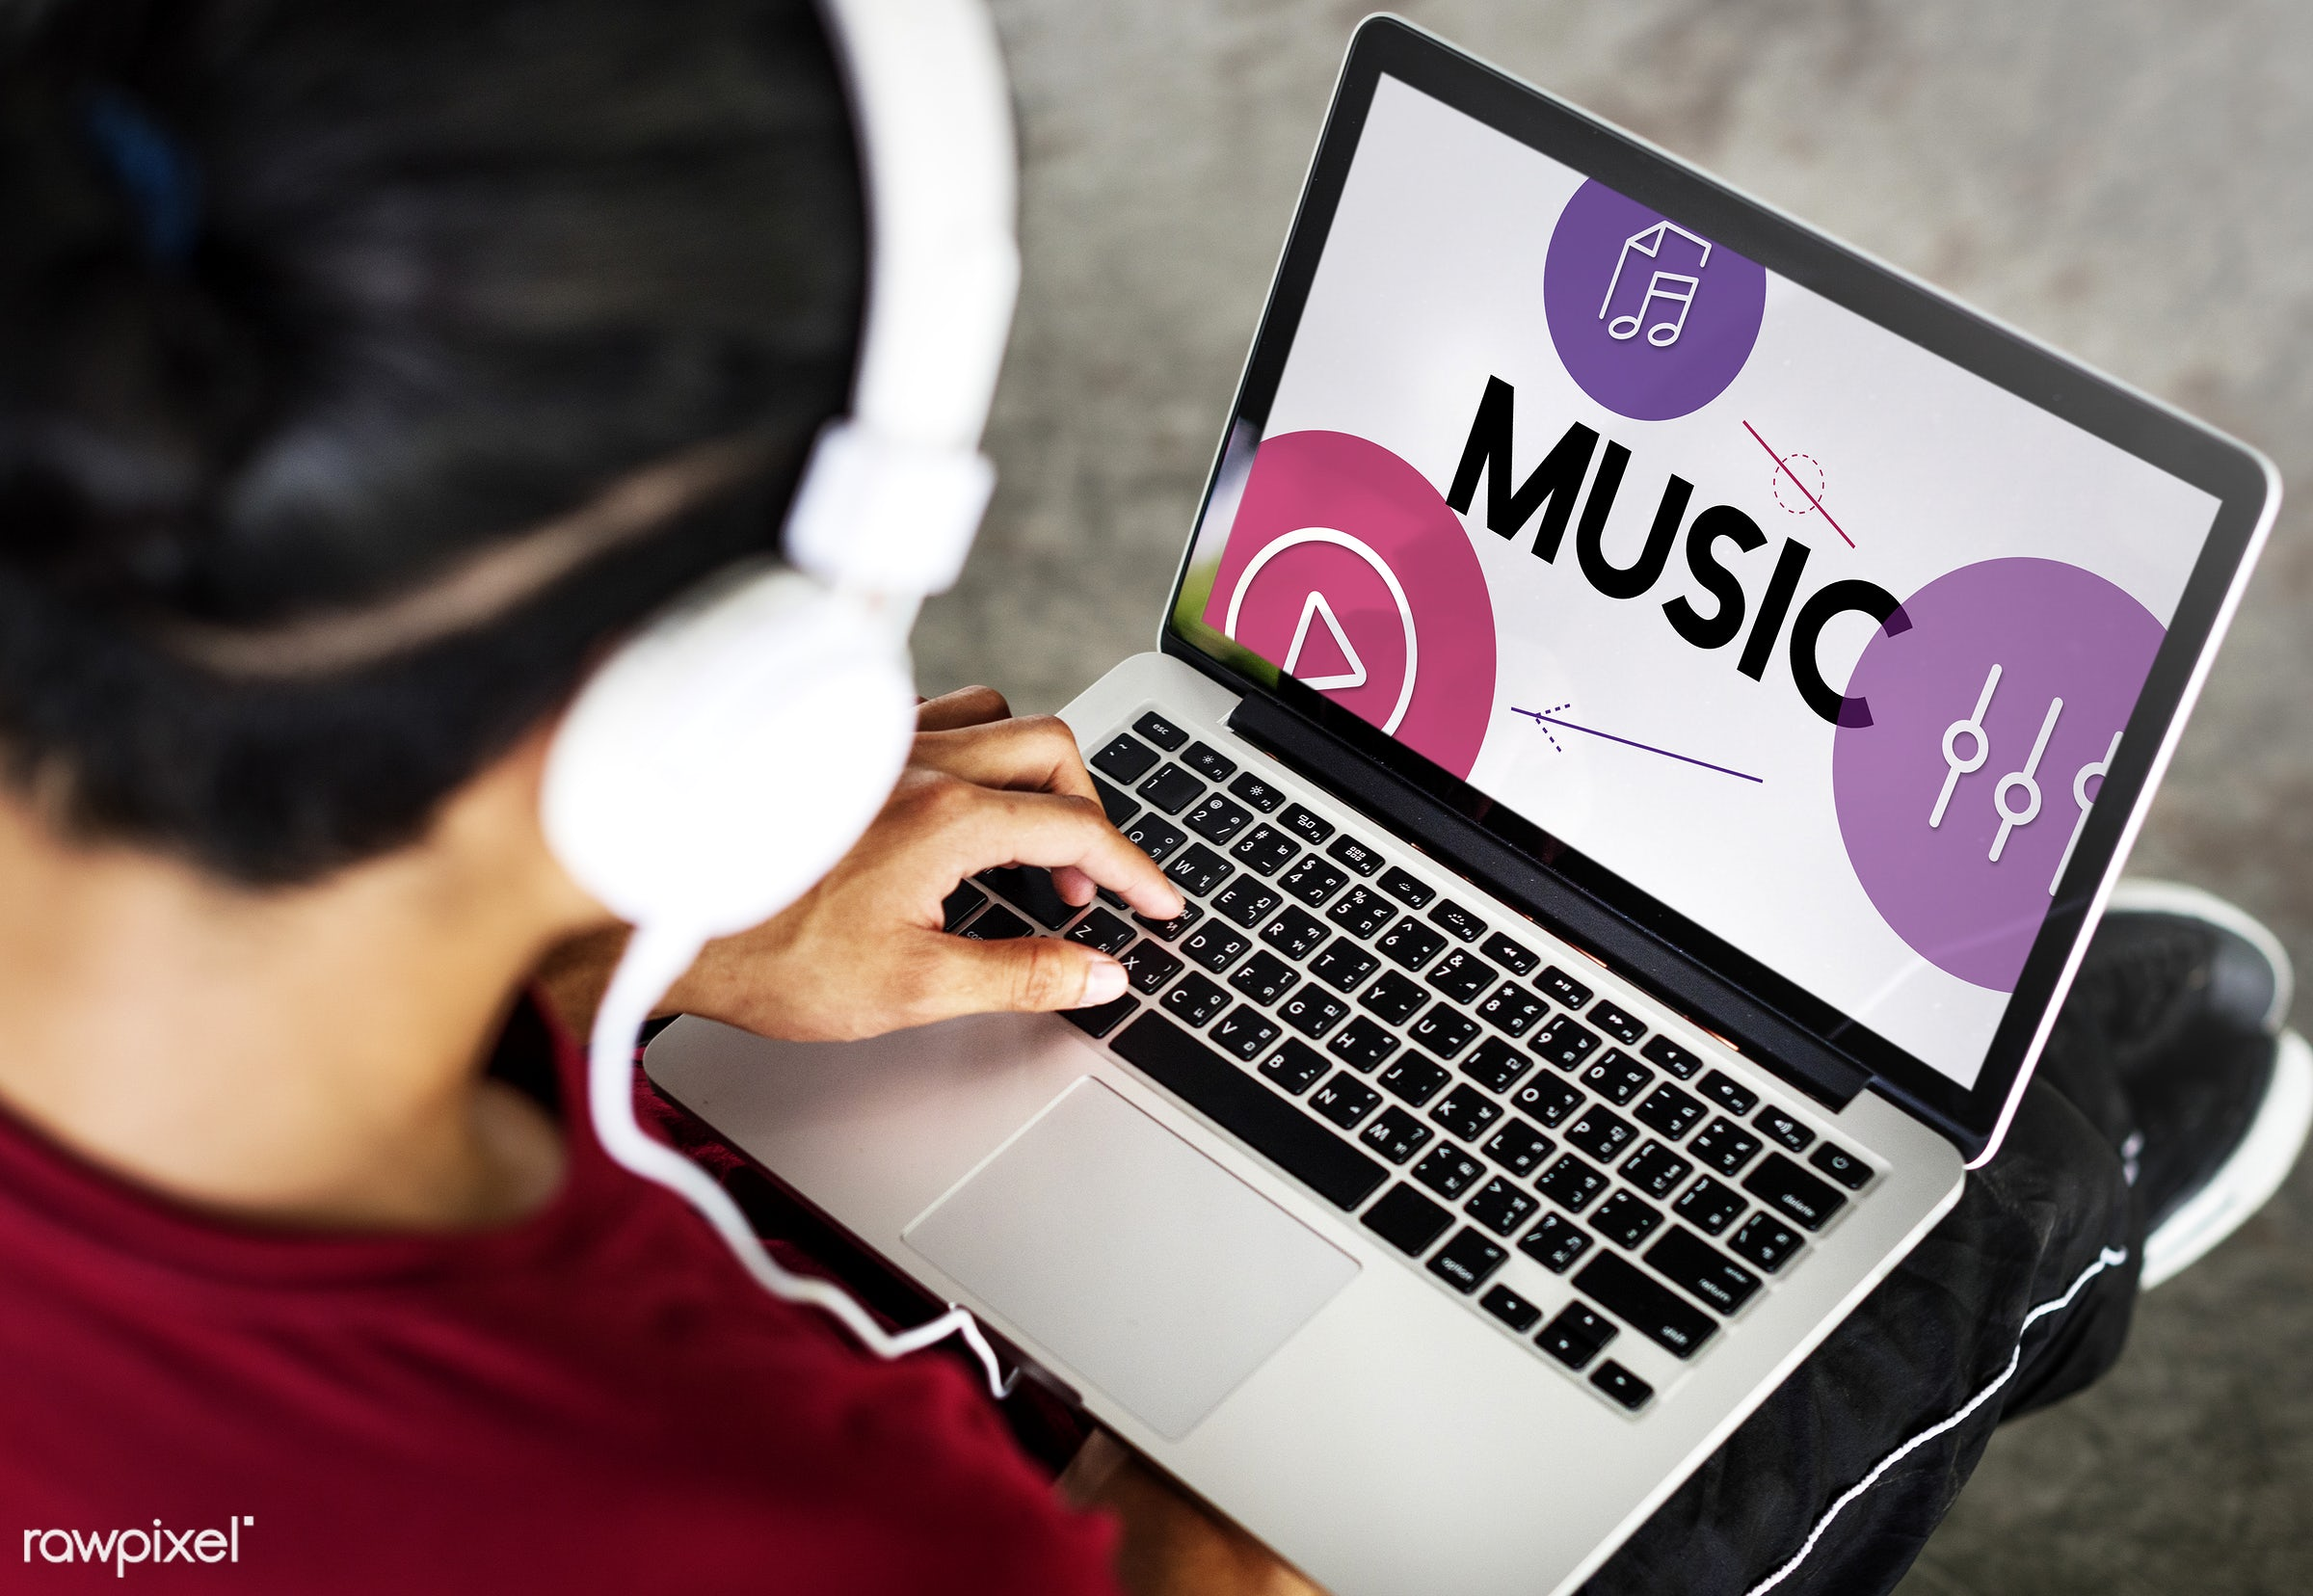 audio, broadcast, browse, browsing, connect, connection, digital media, entertainment, equalizer, graphics, harmony,...